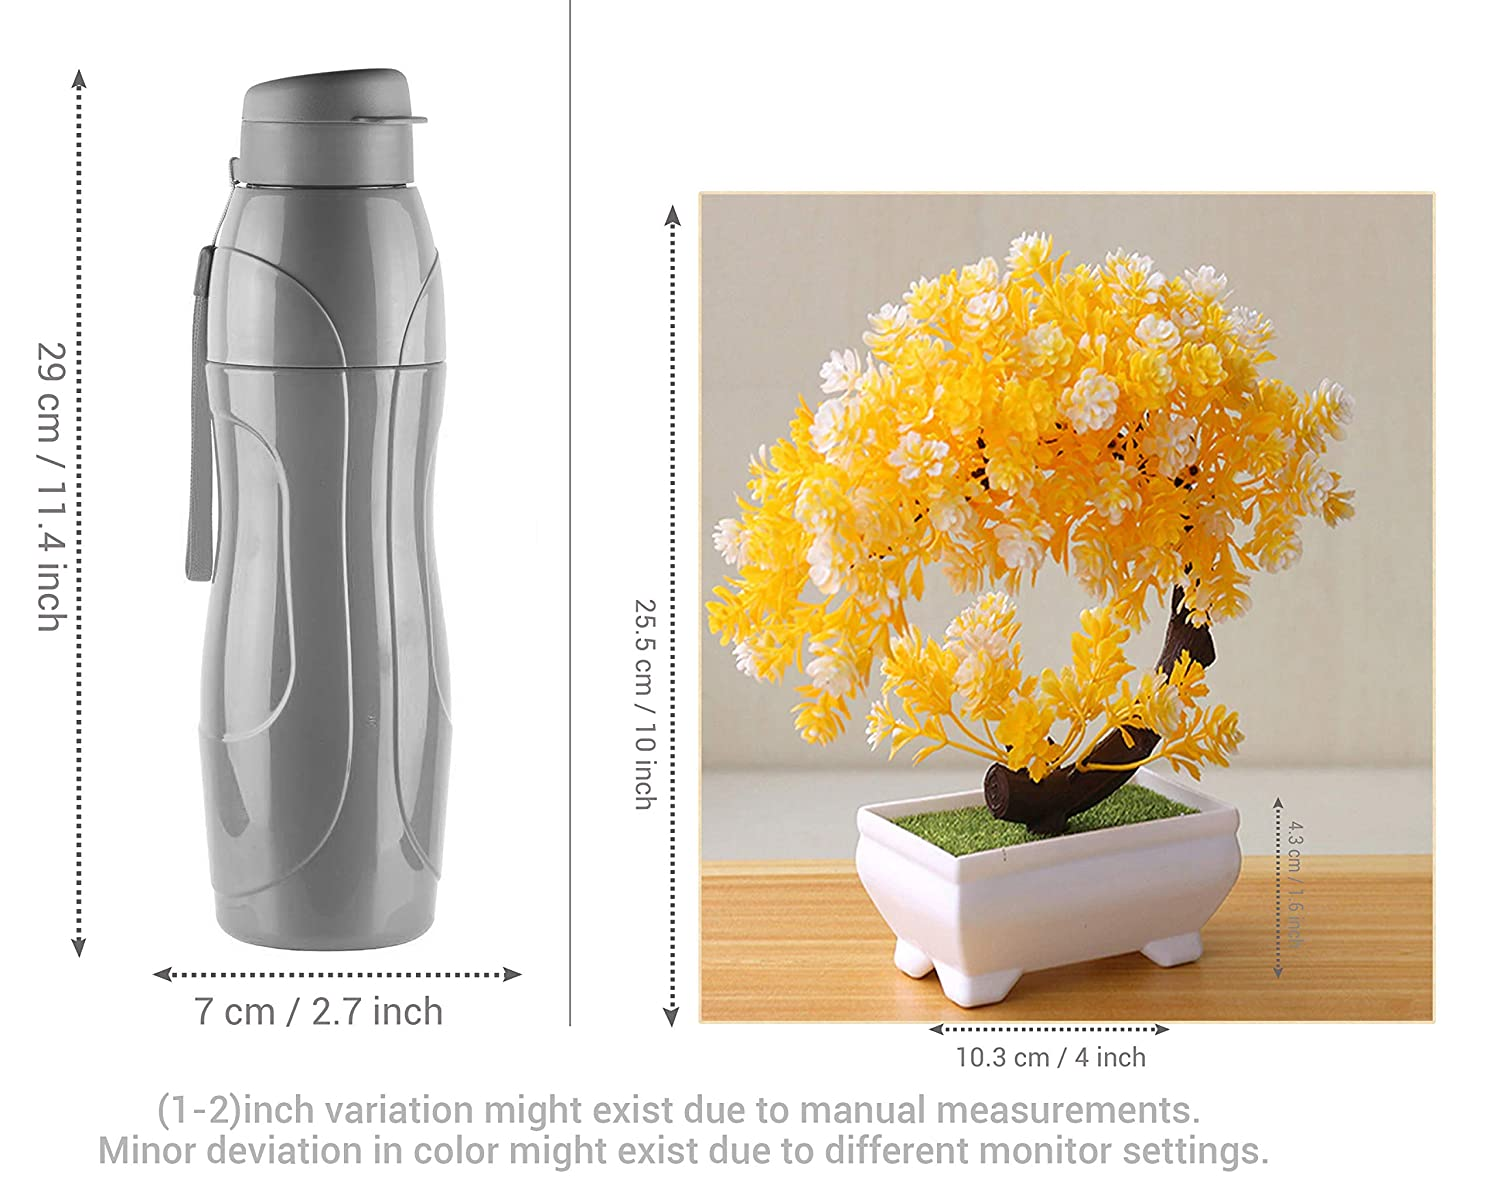 Decorative Artificial Flowers With White Pot For Office Table Living Room Indoor Home Decorative Item (Pack Of 1, 10.3 Cm X 25.5 Cm X 4.3 Cm)